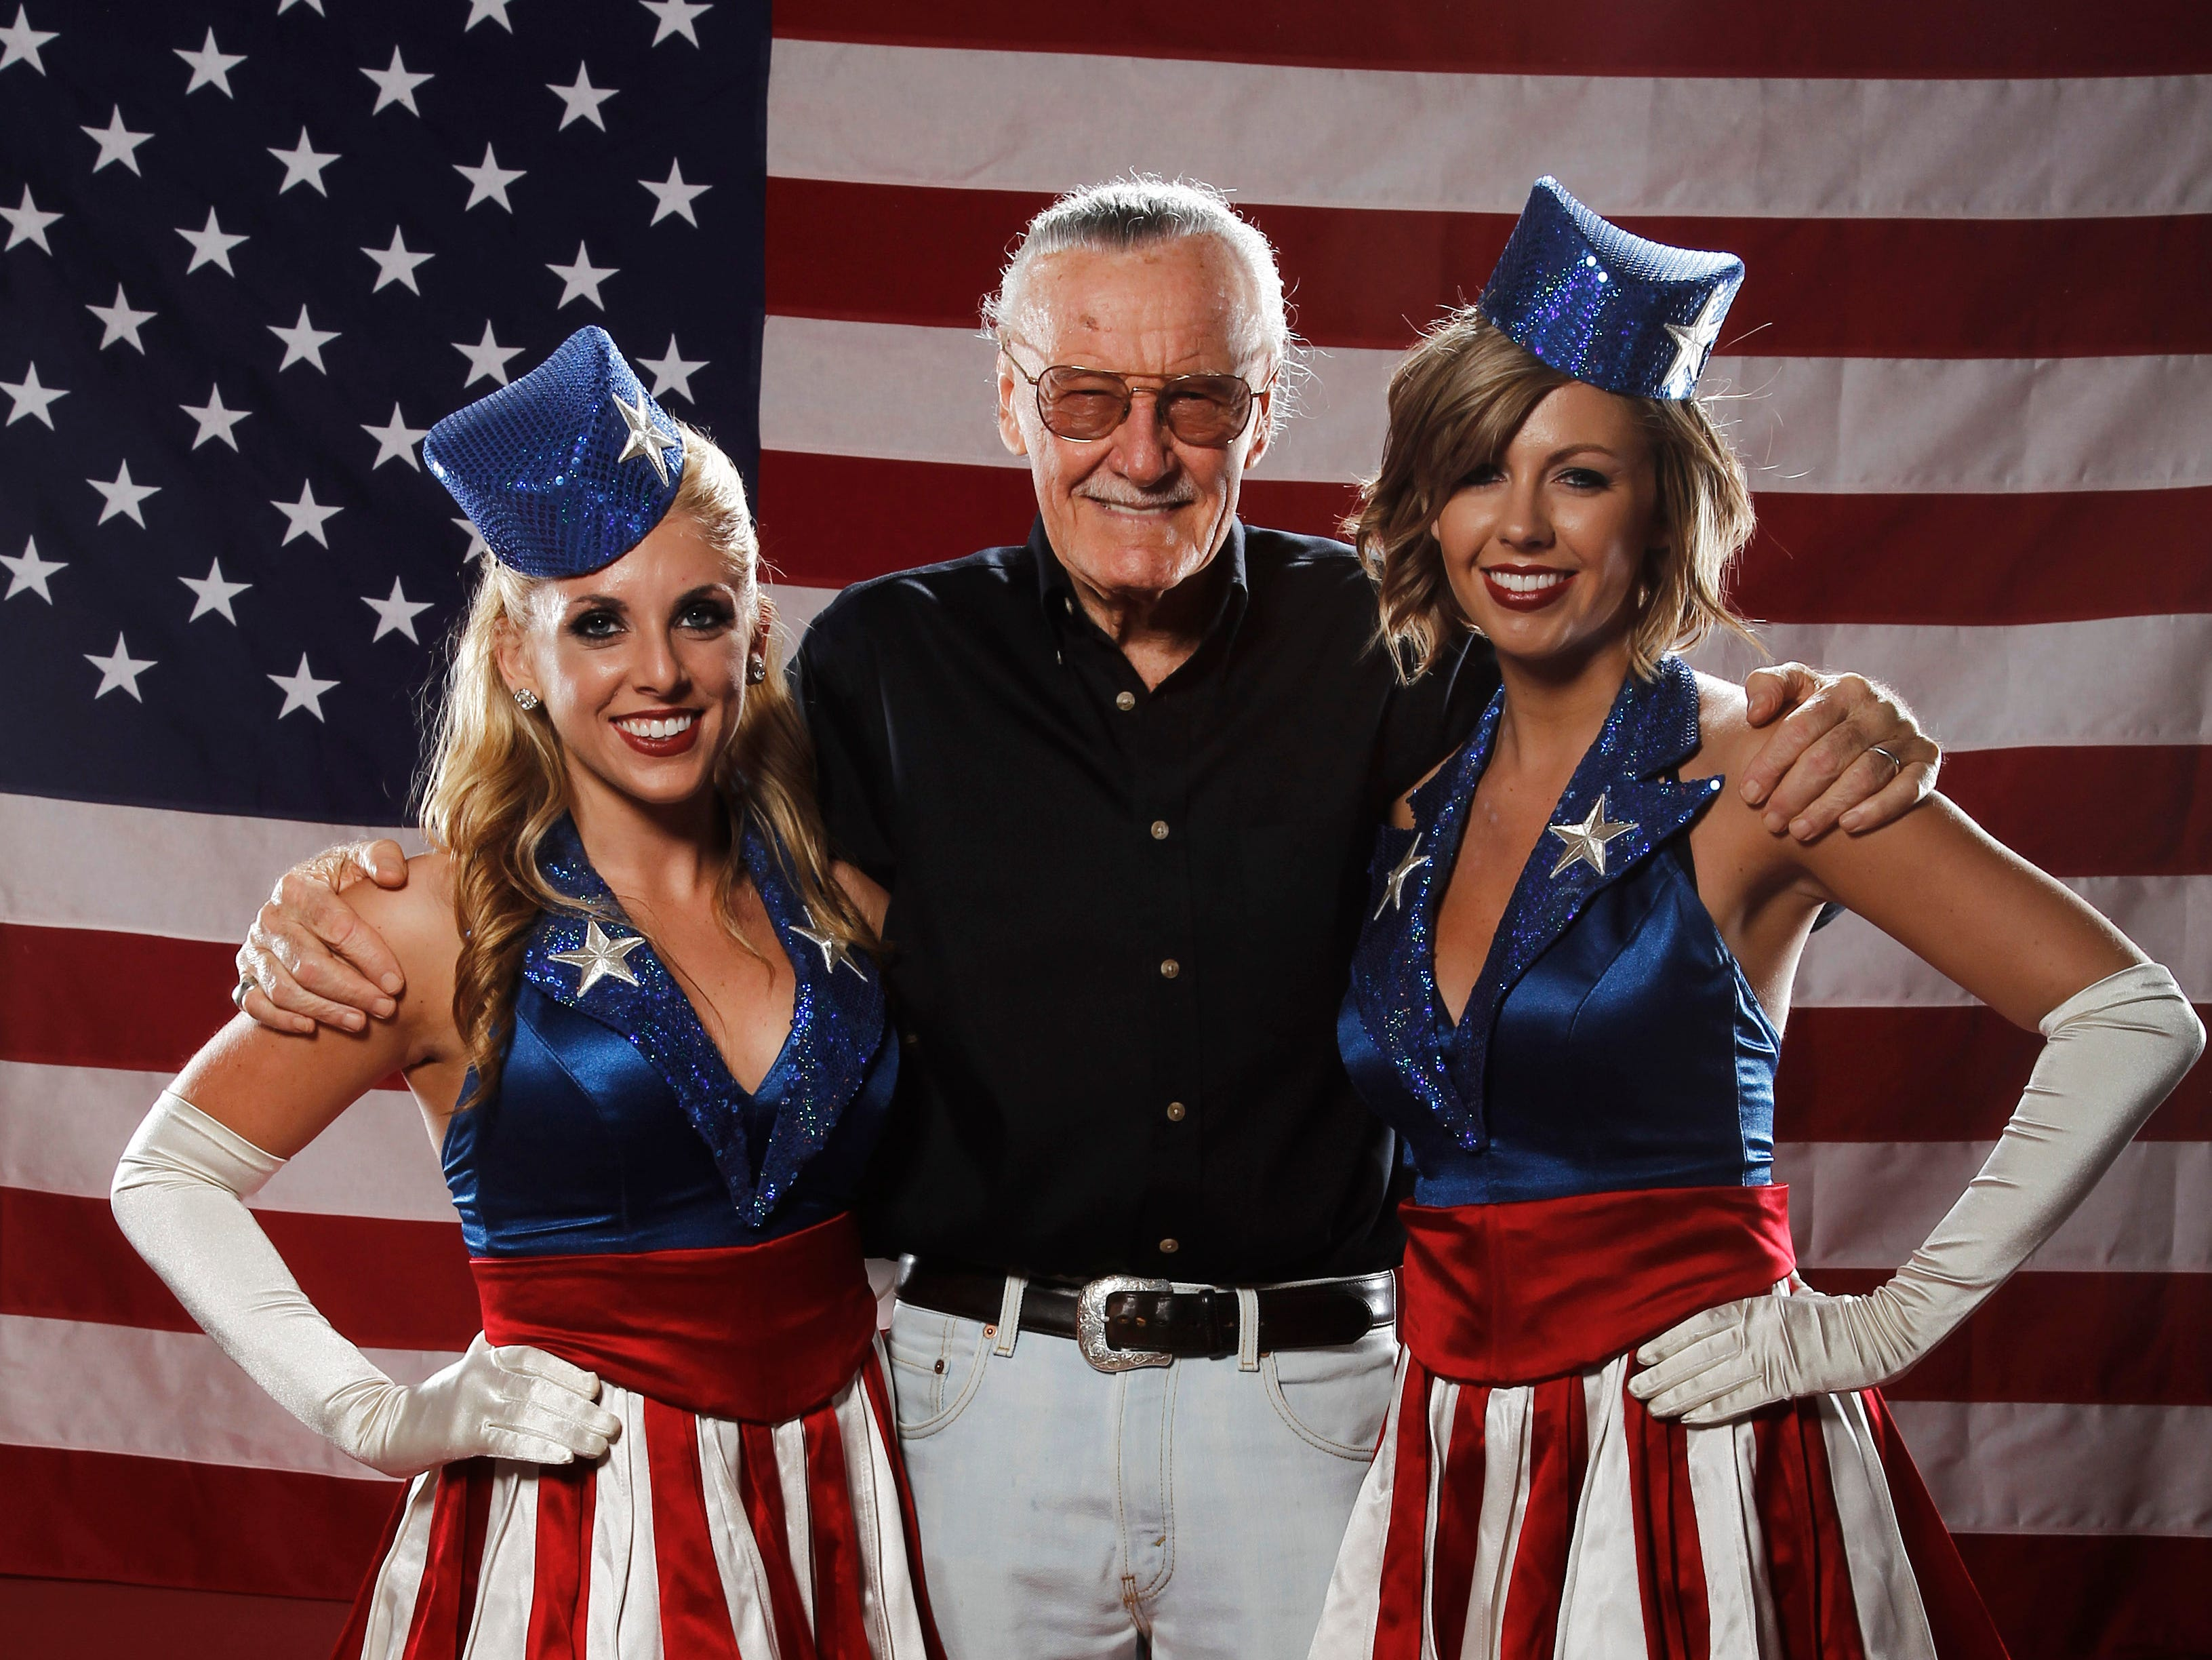 Stan Lee, poses for a portrait at the LMT Music Lodge during Comic Con in San Diego in 2011.